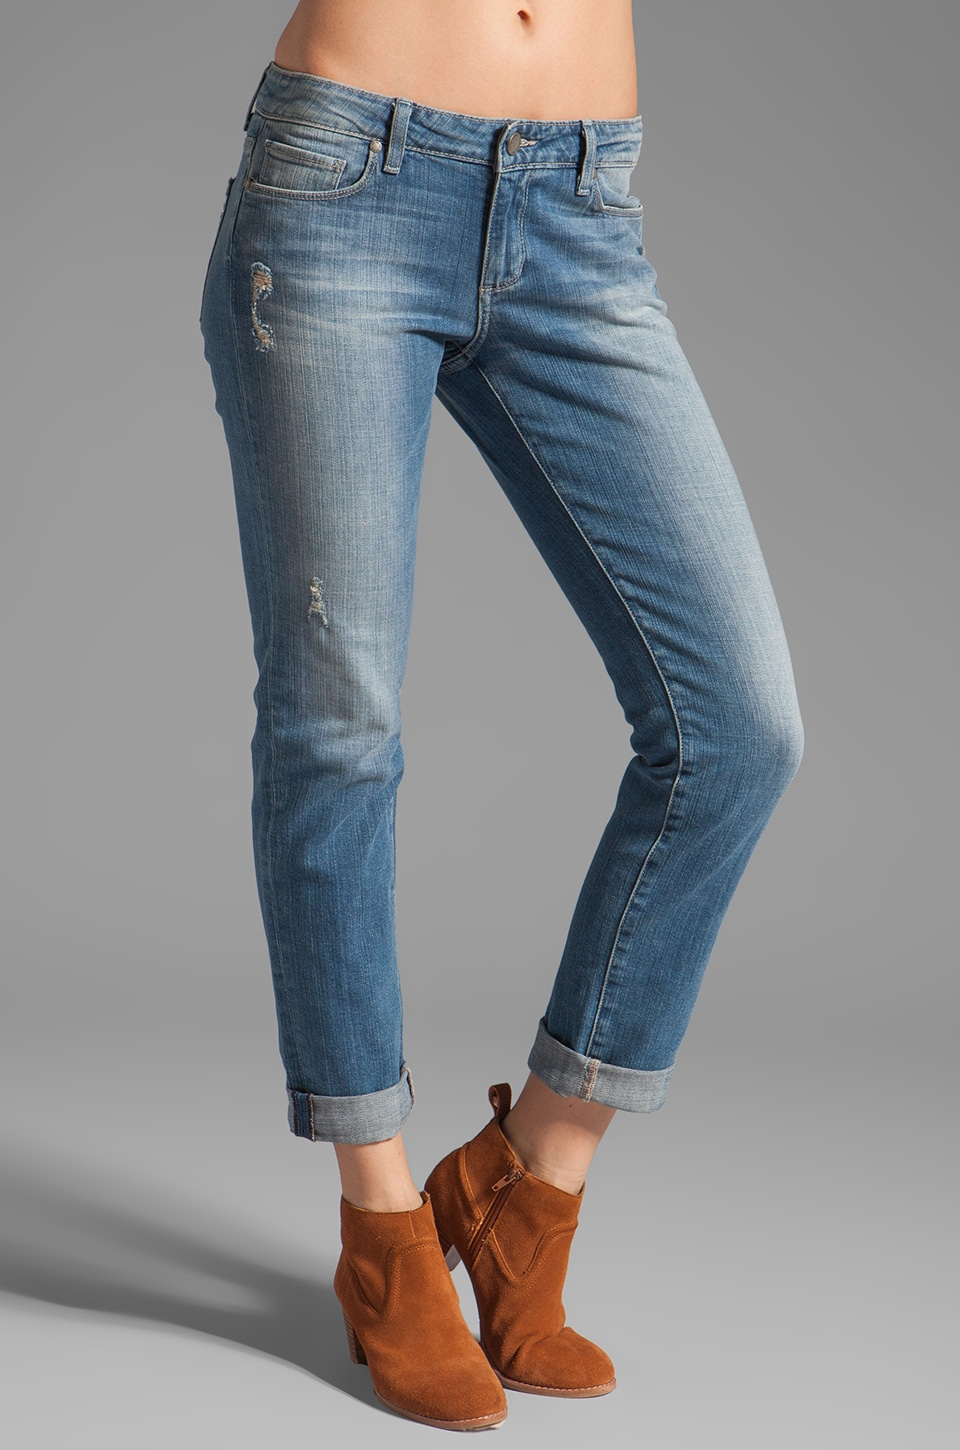 Paige Denim Jimmy Jimmy Skinny in Sadie